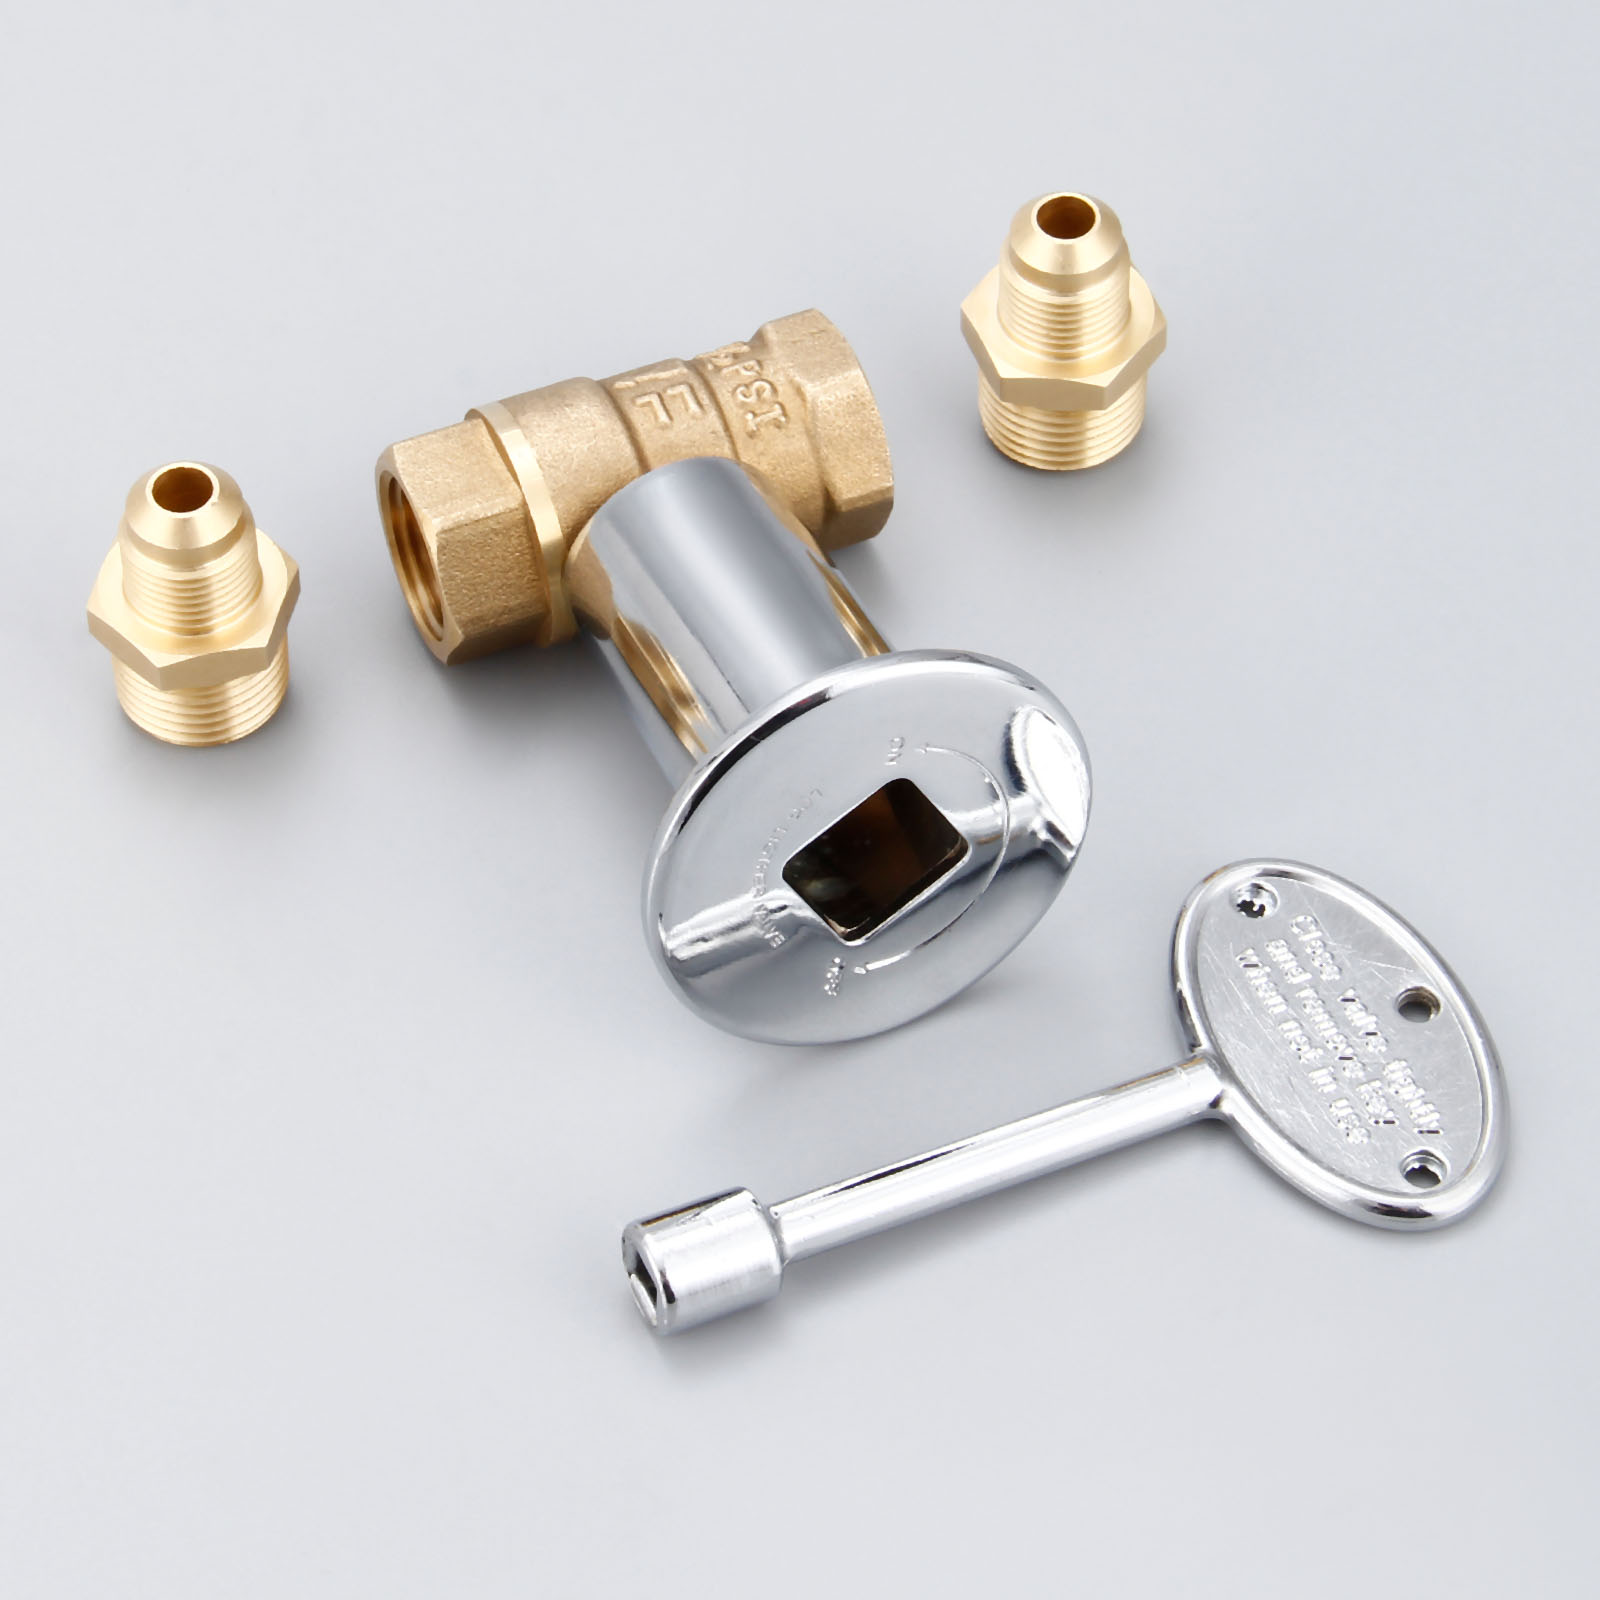 1/2Inch Straight Quarter Turn Shut-Off Valve Kit For NG LP Gas Fire Pits with Chrome Flange key valve 3/8flare adapters